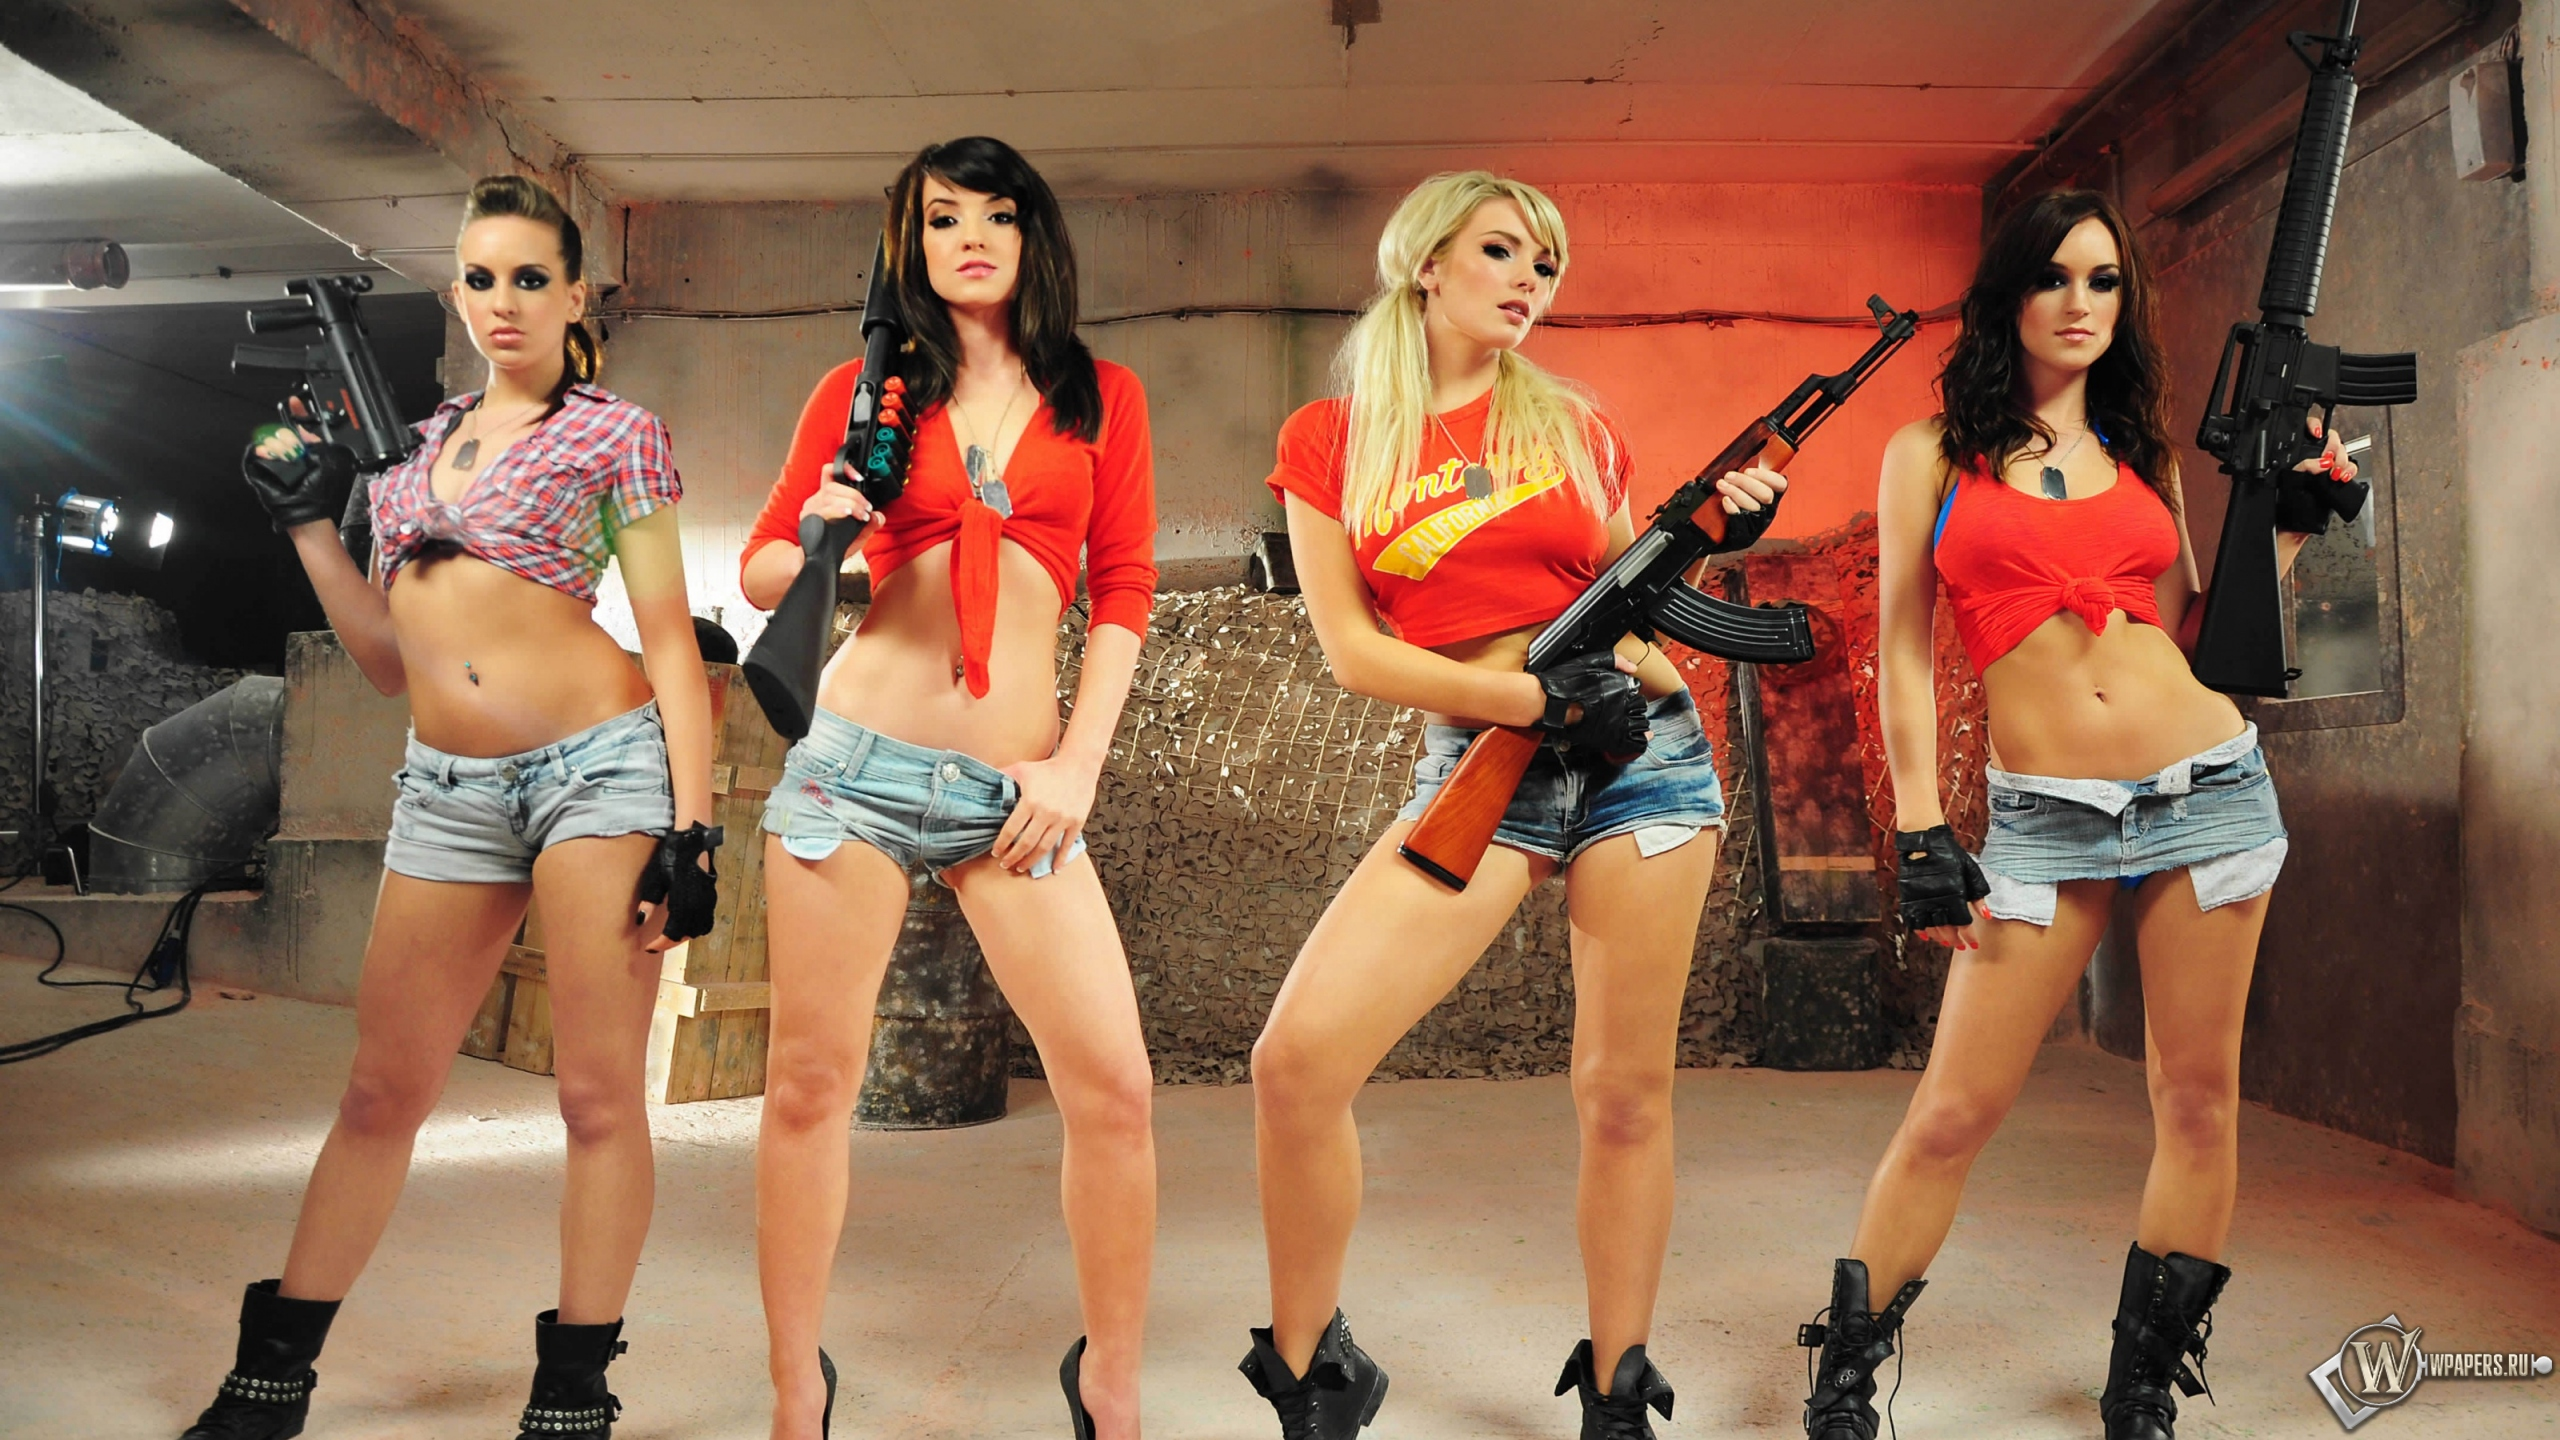 Bad girl Joslyn James begs for some love gun posing with an automatic weapon № 147656 загрузить